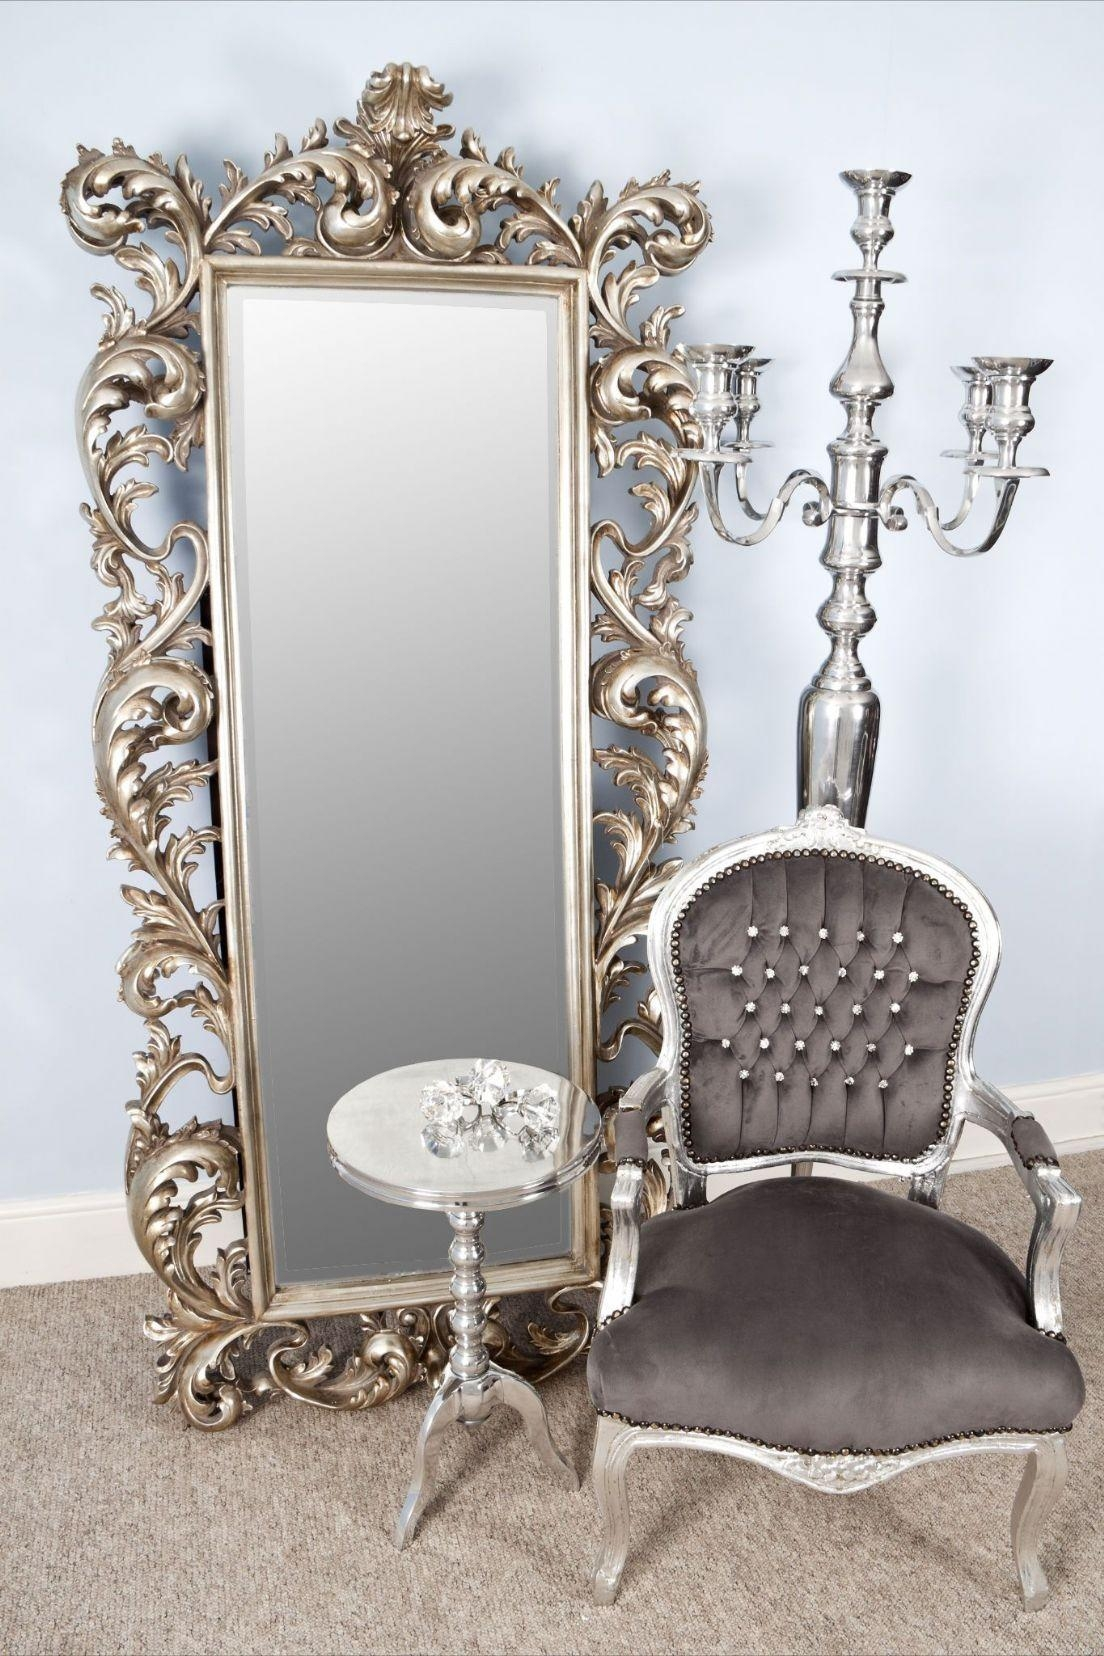 Ornate Mirrors For Sale 77 Inspiring Style For Hollywood Regency With Vintage Looking Mirror (View 4 of 15)